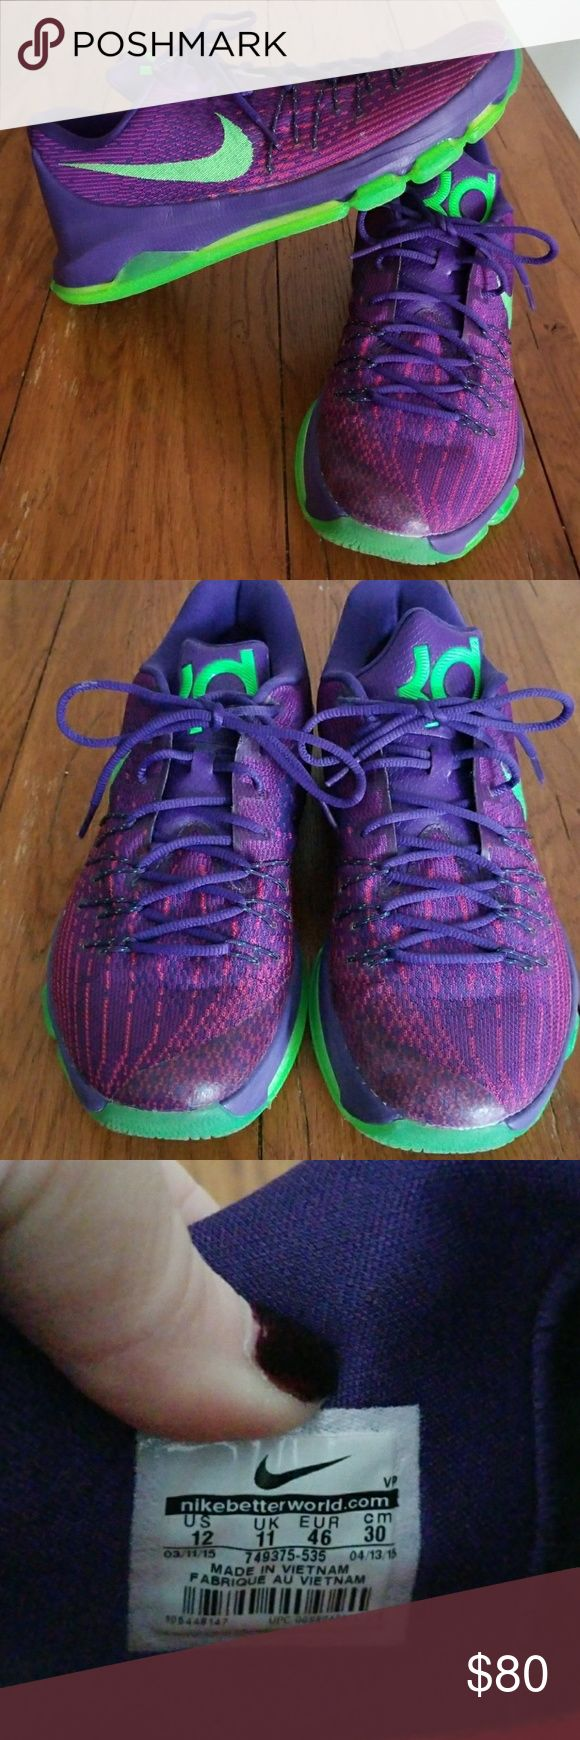 Nike KD 8 Basketball Shoes Purple/lime Green color, Men's  size 12, EUC, only used a few times on the basketball court Nike Shoes Athletic Shoes